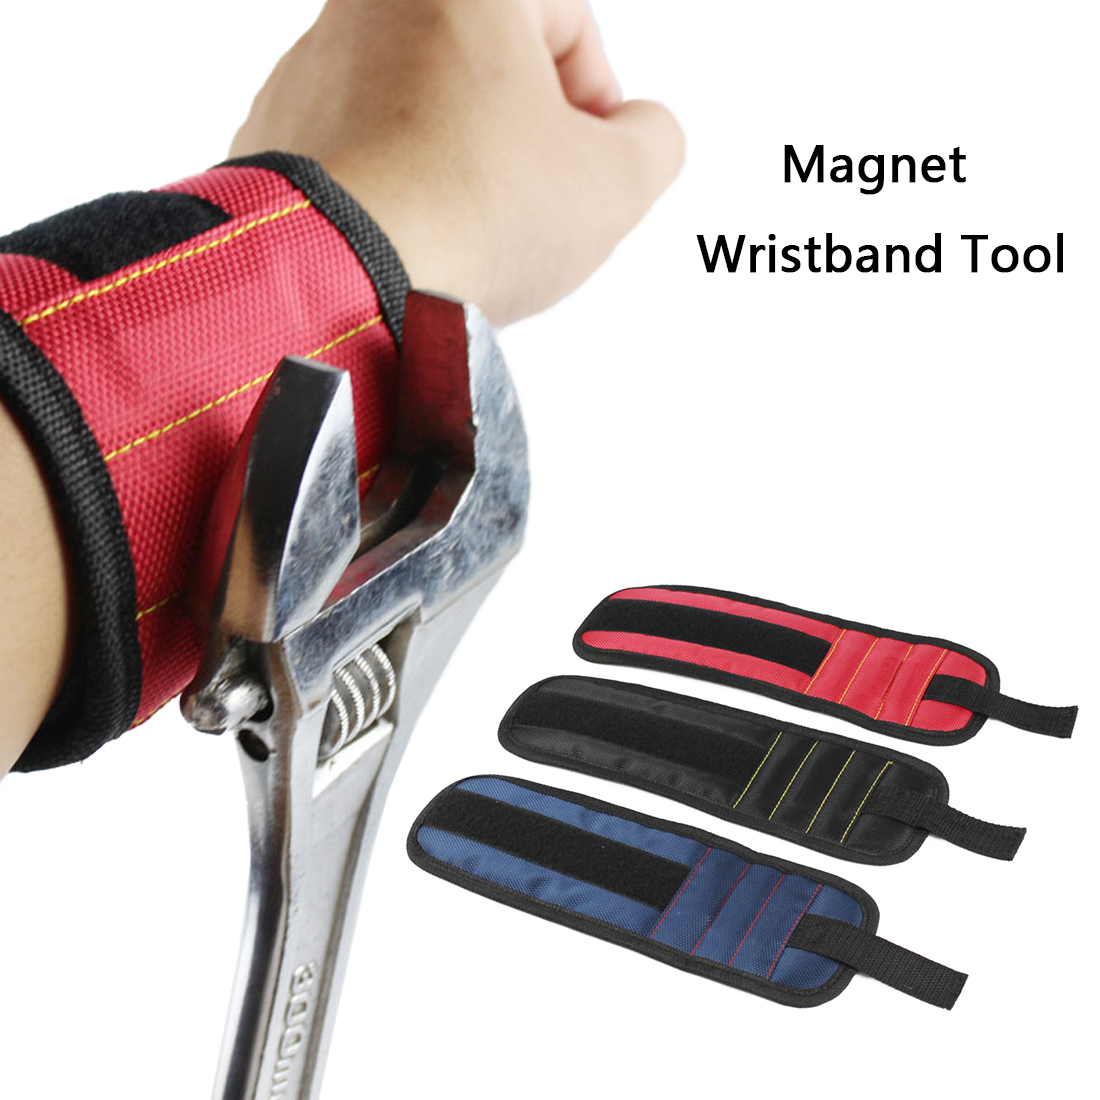 Storage Bag Magnetic Wrist Support Band With Strong Magnets For Holding Screws Nail Bracelet Belt Support Chuck Sports Tool